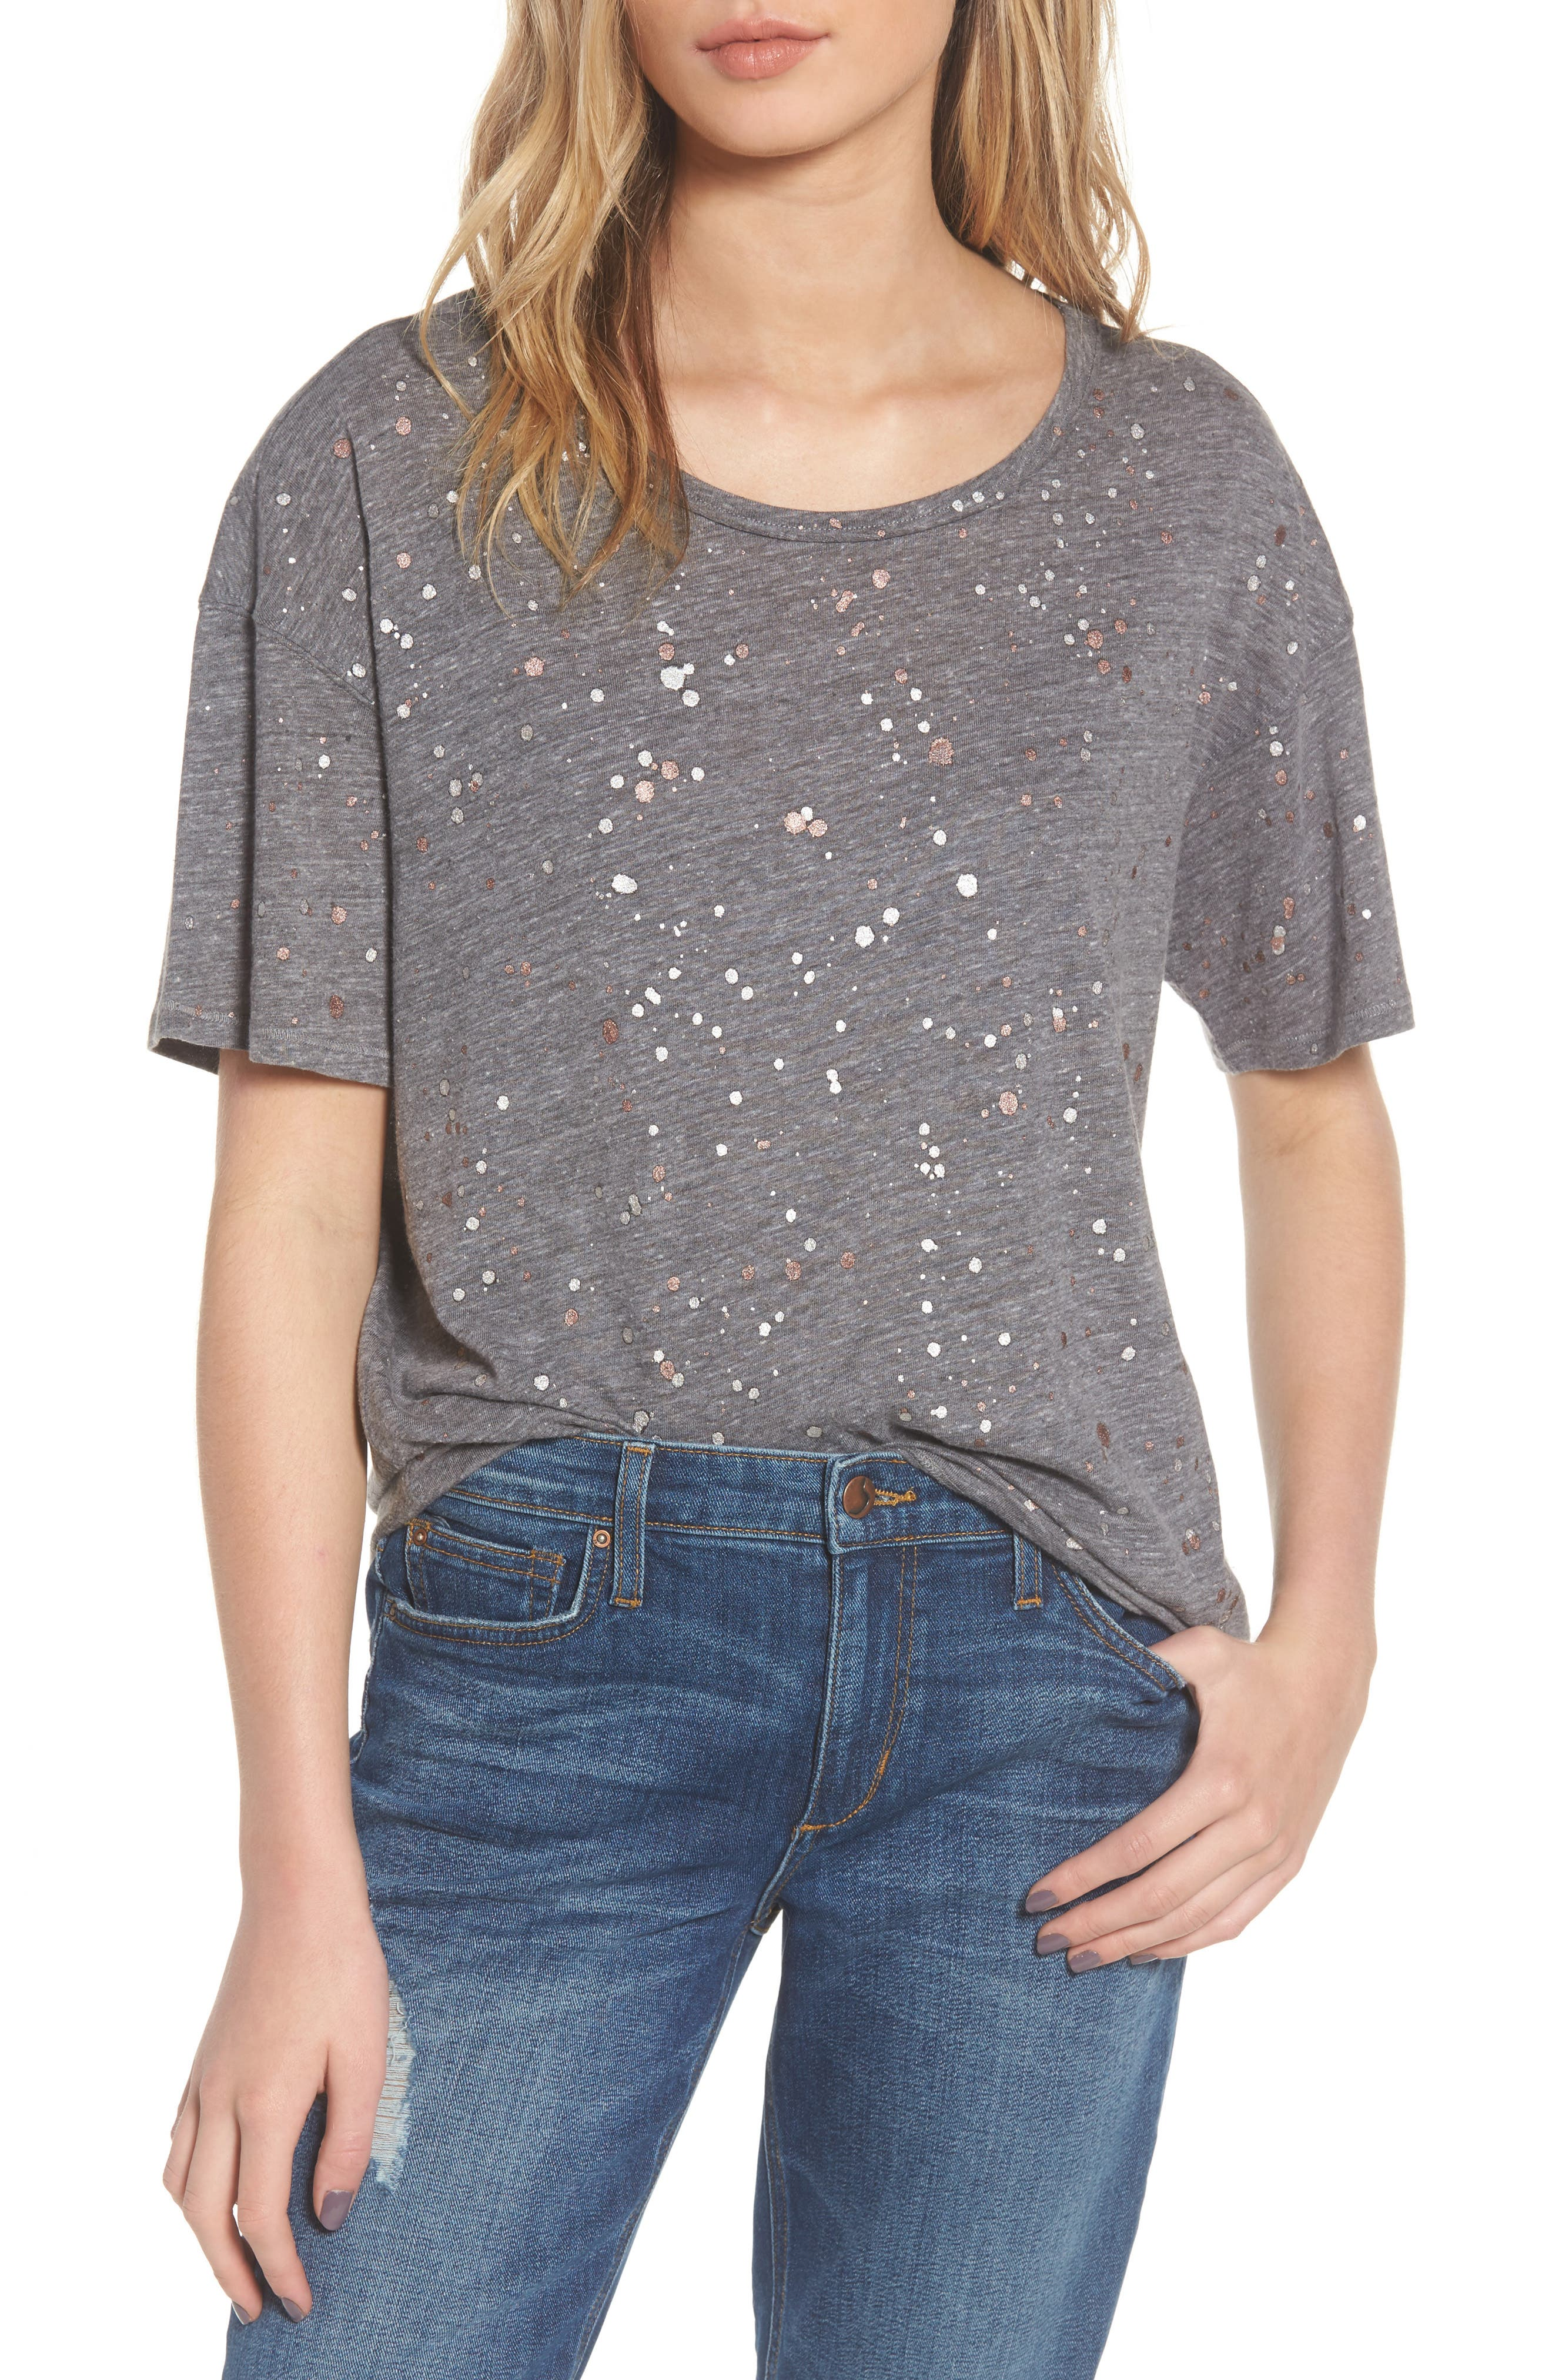 Splendid Metallic Splatter Tee